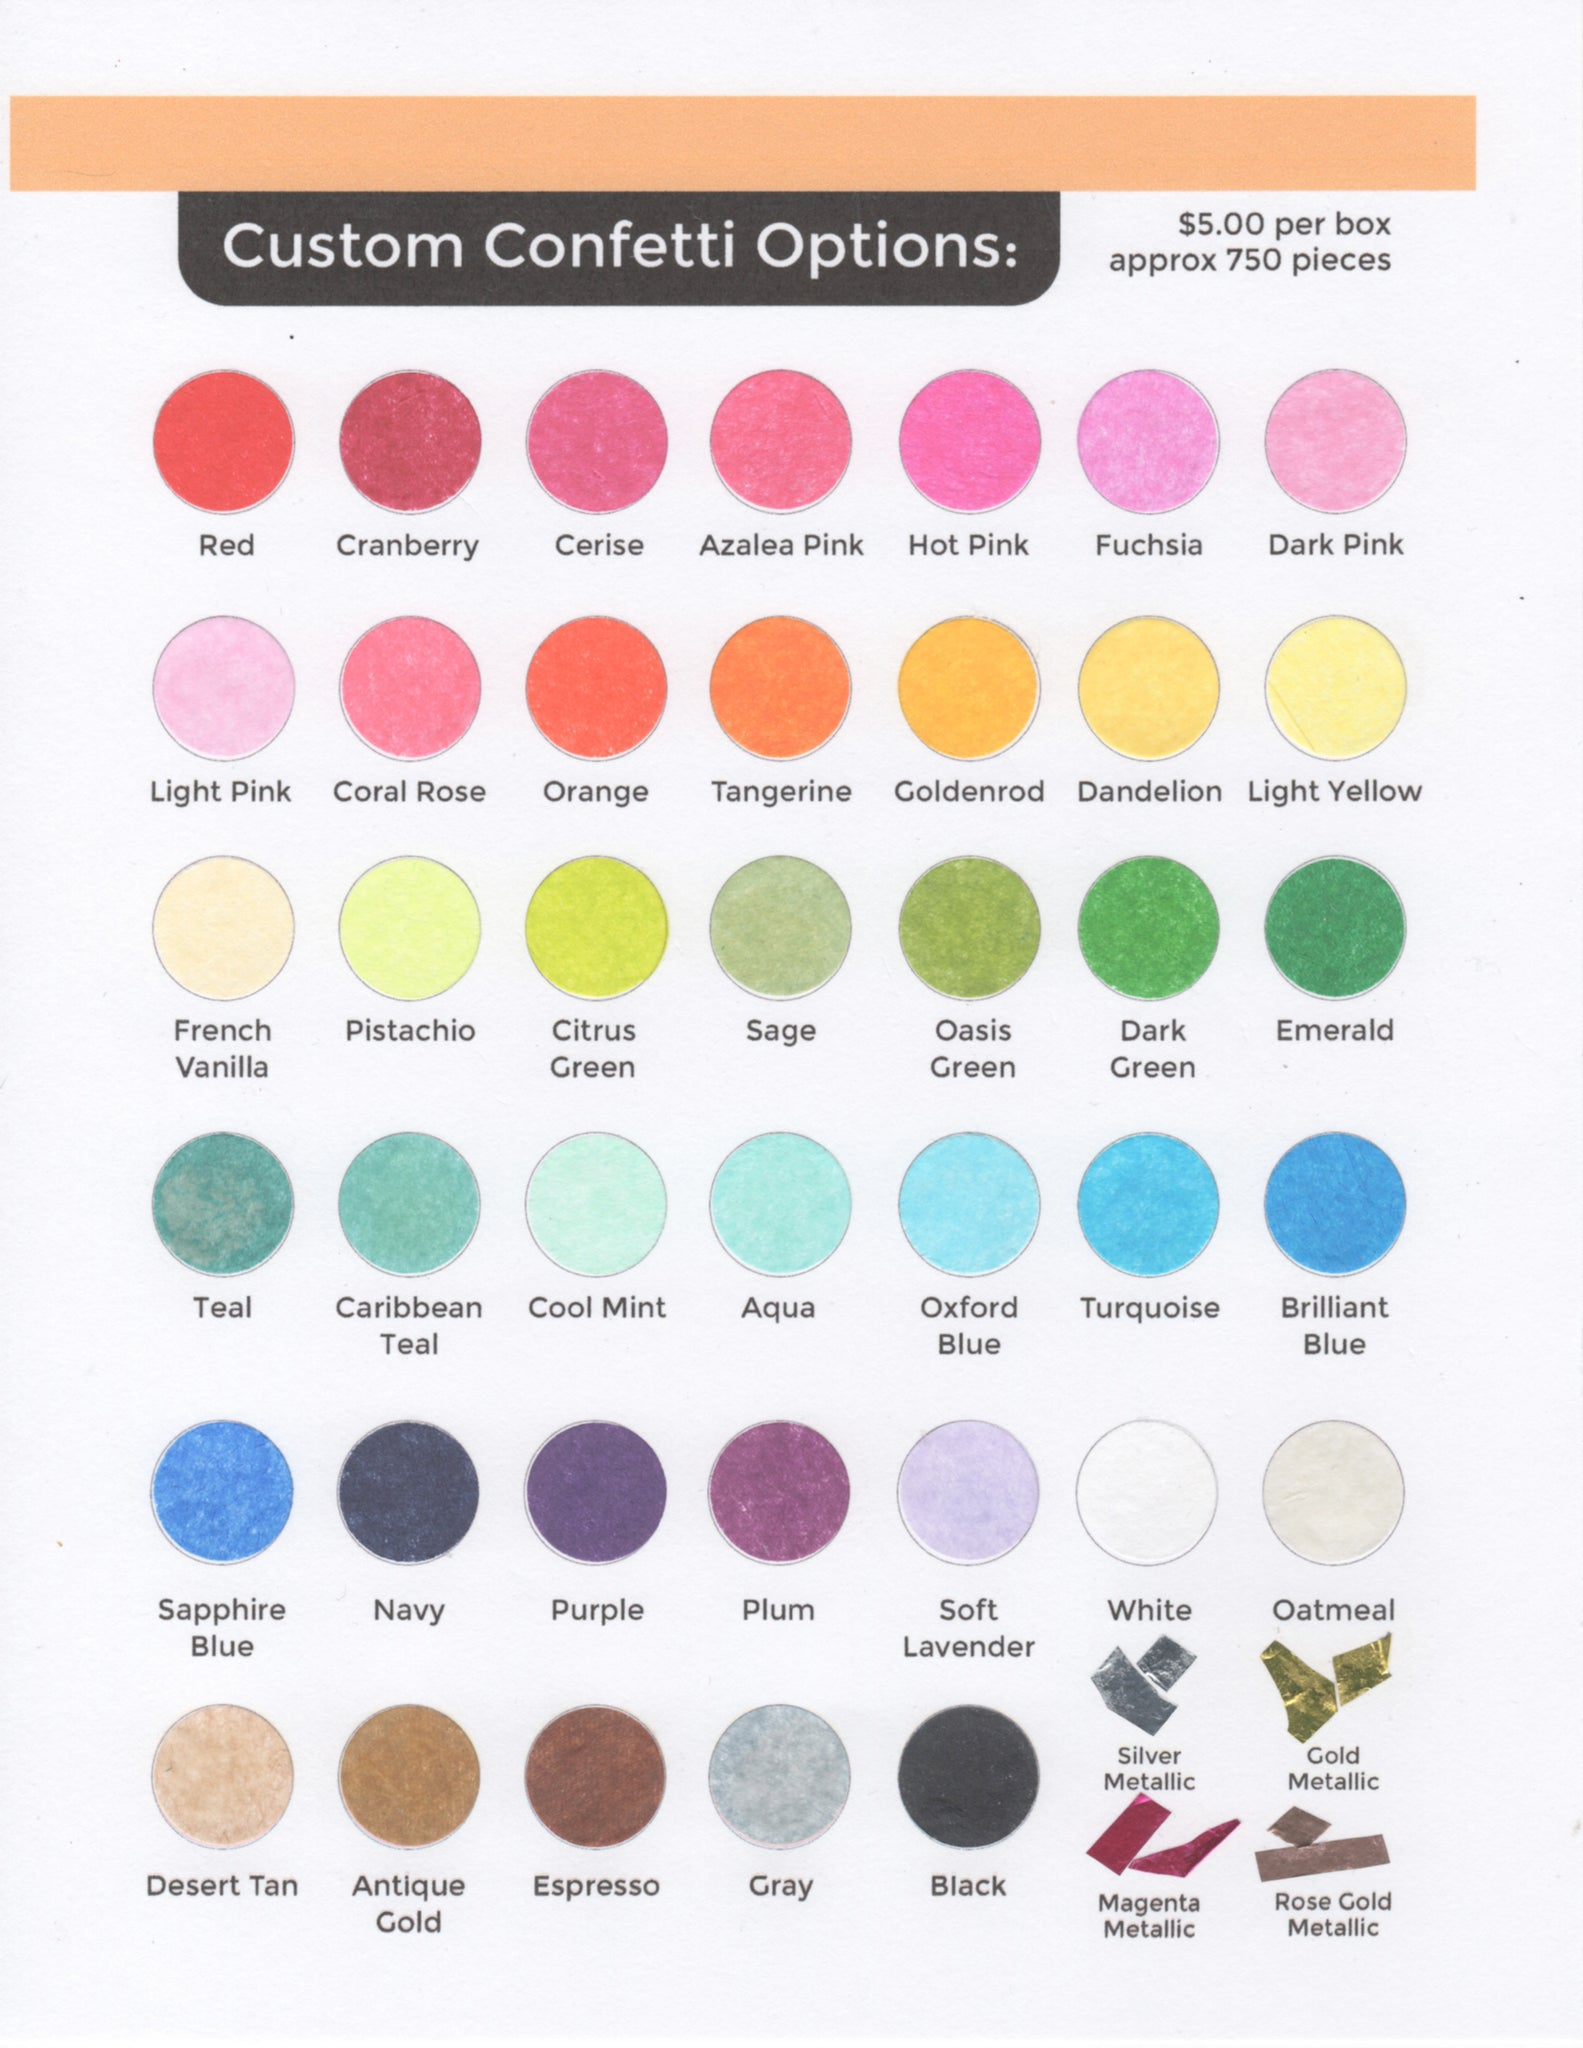 Confetti color options